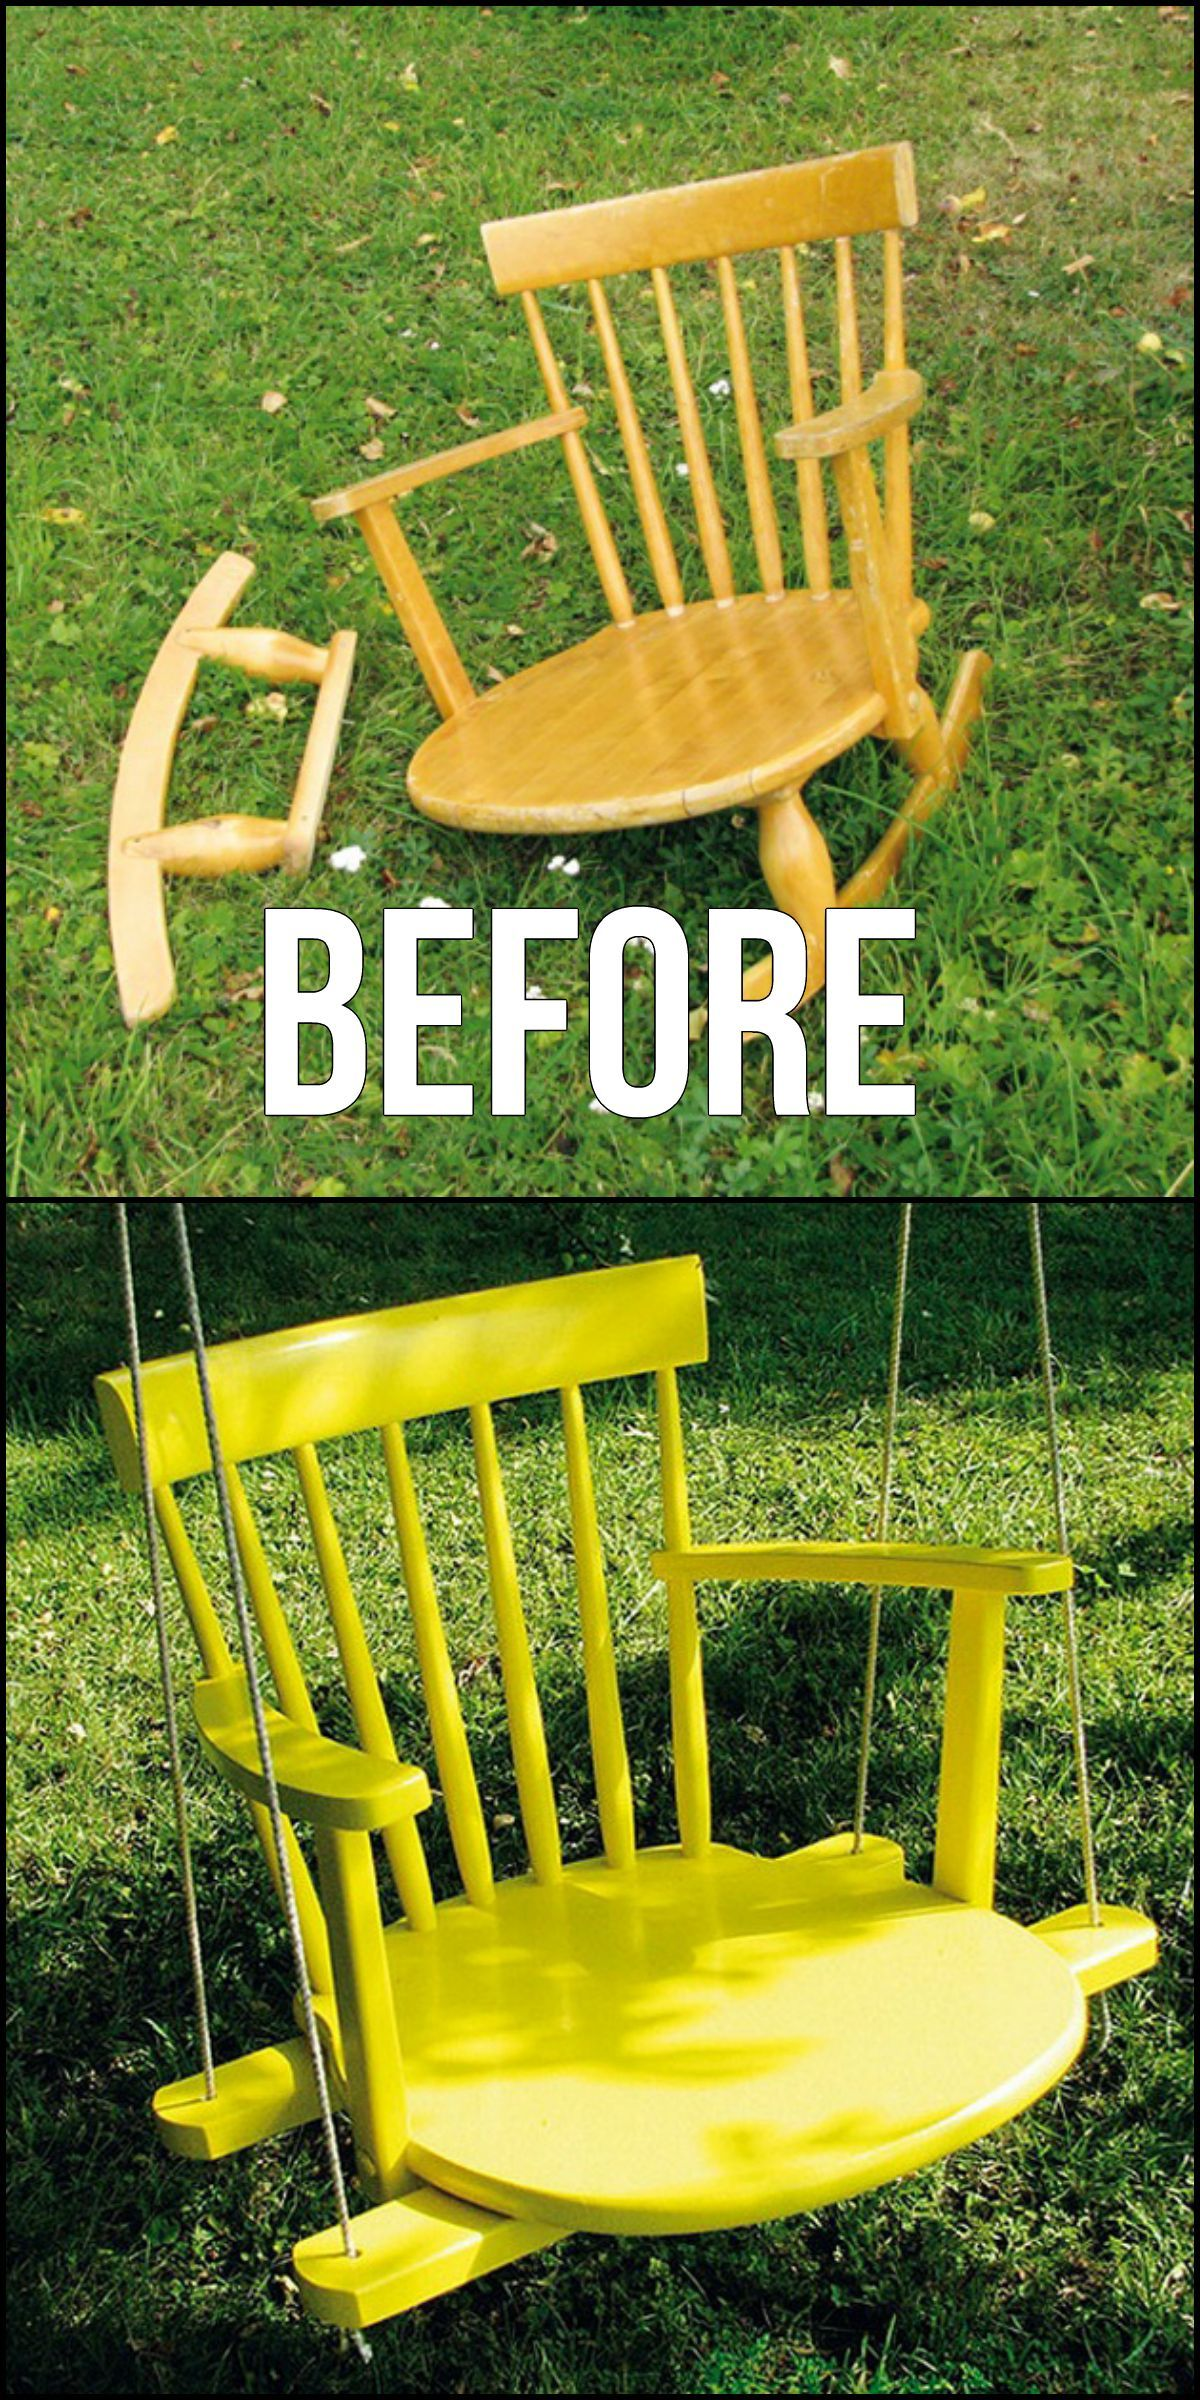 Set of armchairs and rocking chairs just out from beneath the shelter - How To Turn An Old Chair Into A Chair Swing Http Theownerbuildernetwork